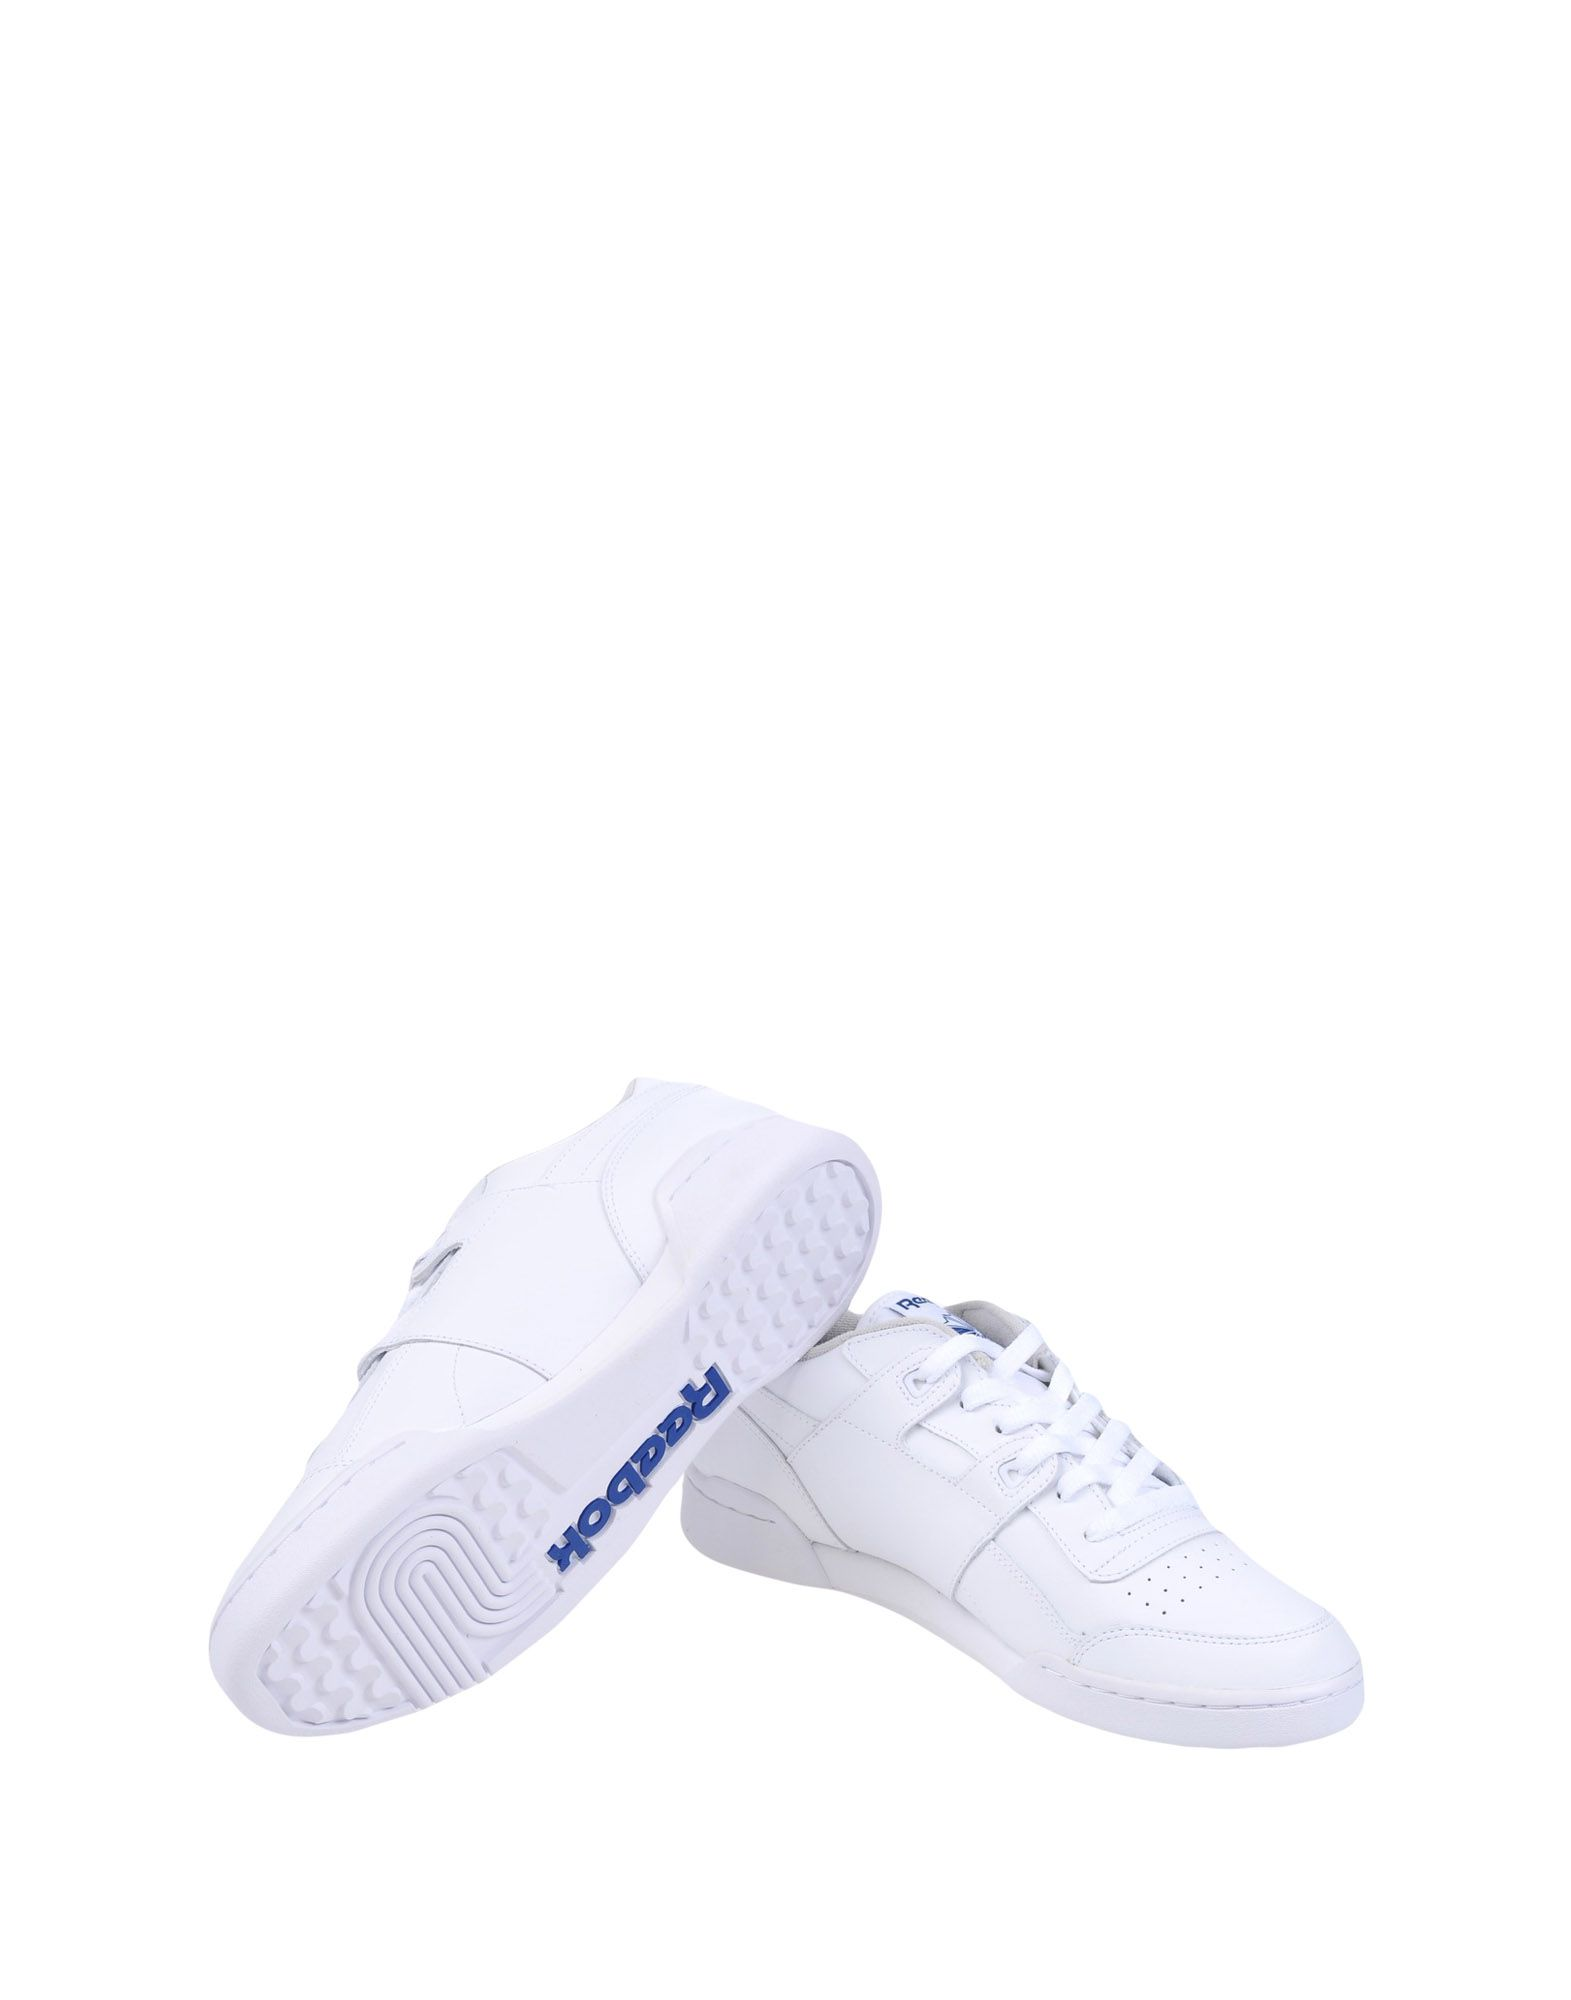 Reebok Workout Plus - Sneakers - Men Reebok Sneakers Sneakers Sneakers online on  Australia - 11200141CA 9b576c